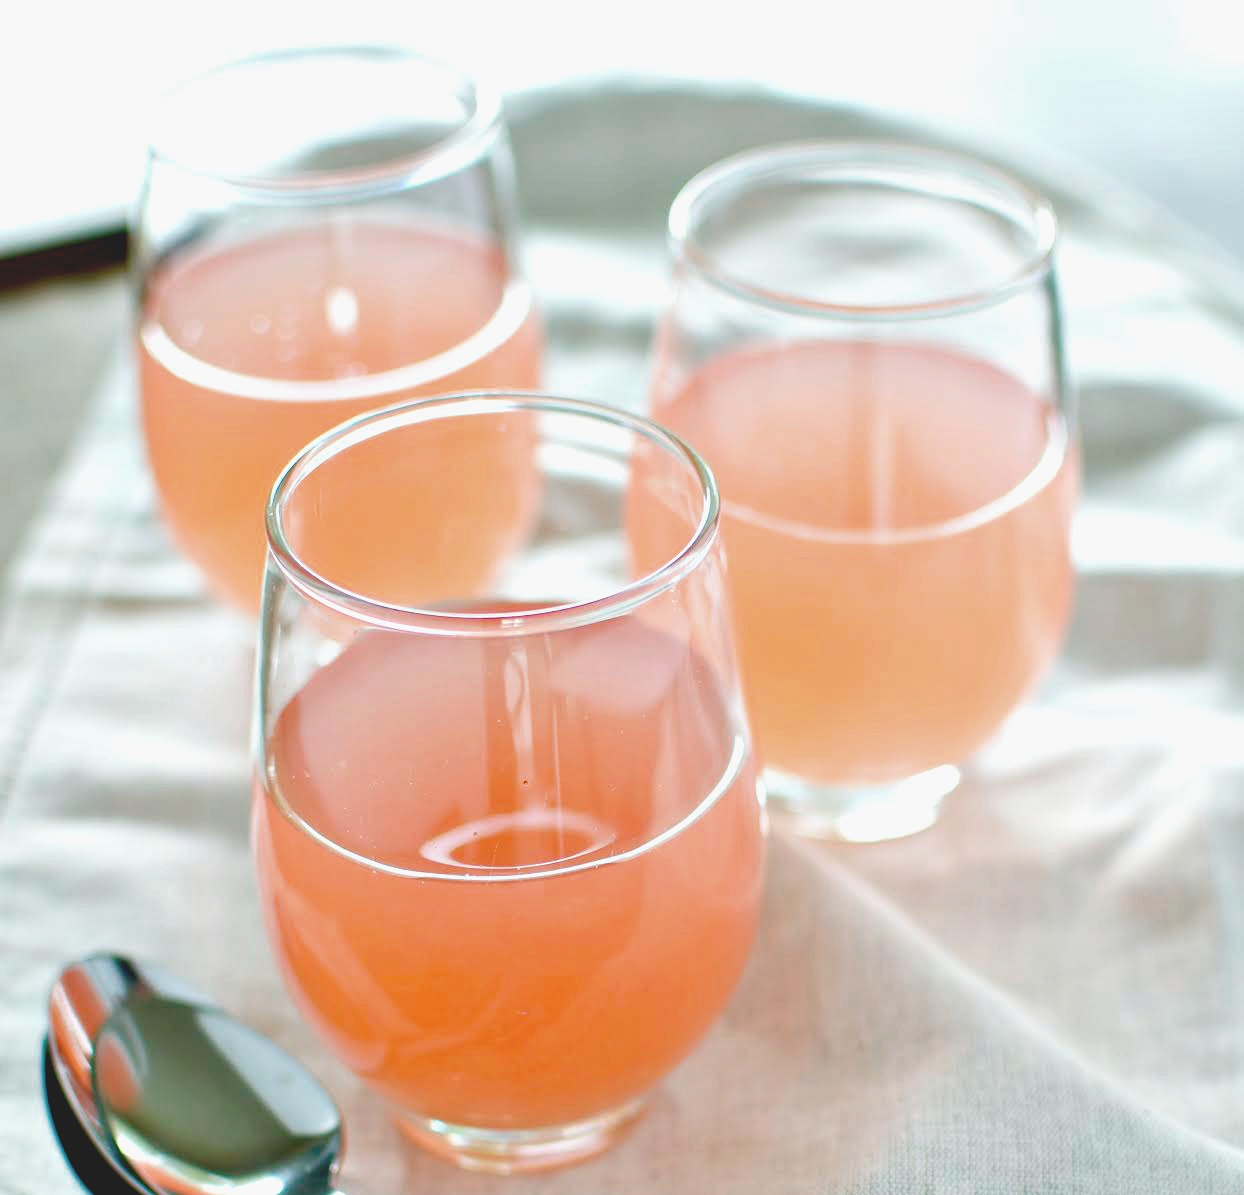 Grapefruit Agua Fresca Drink Recipe FoodieFather.net